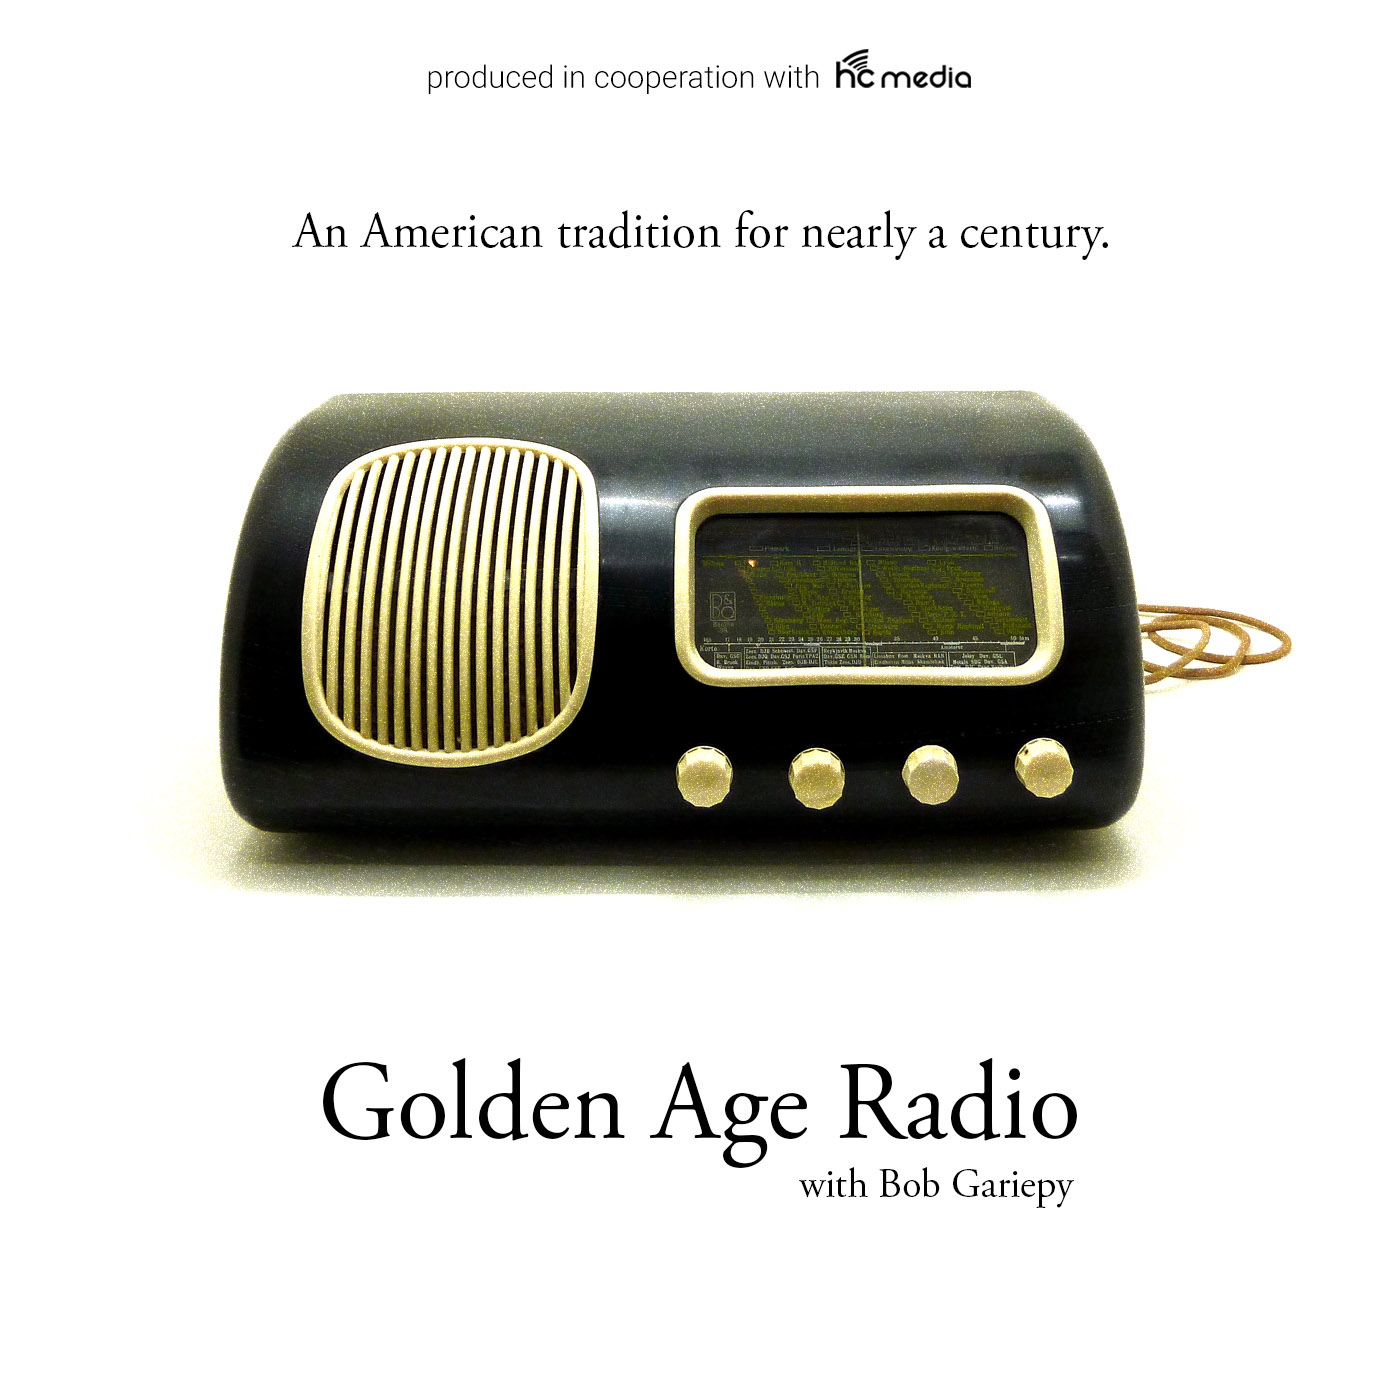 Golden Age Radio